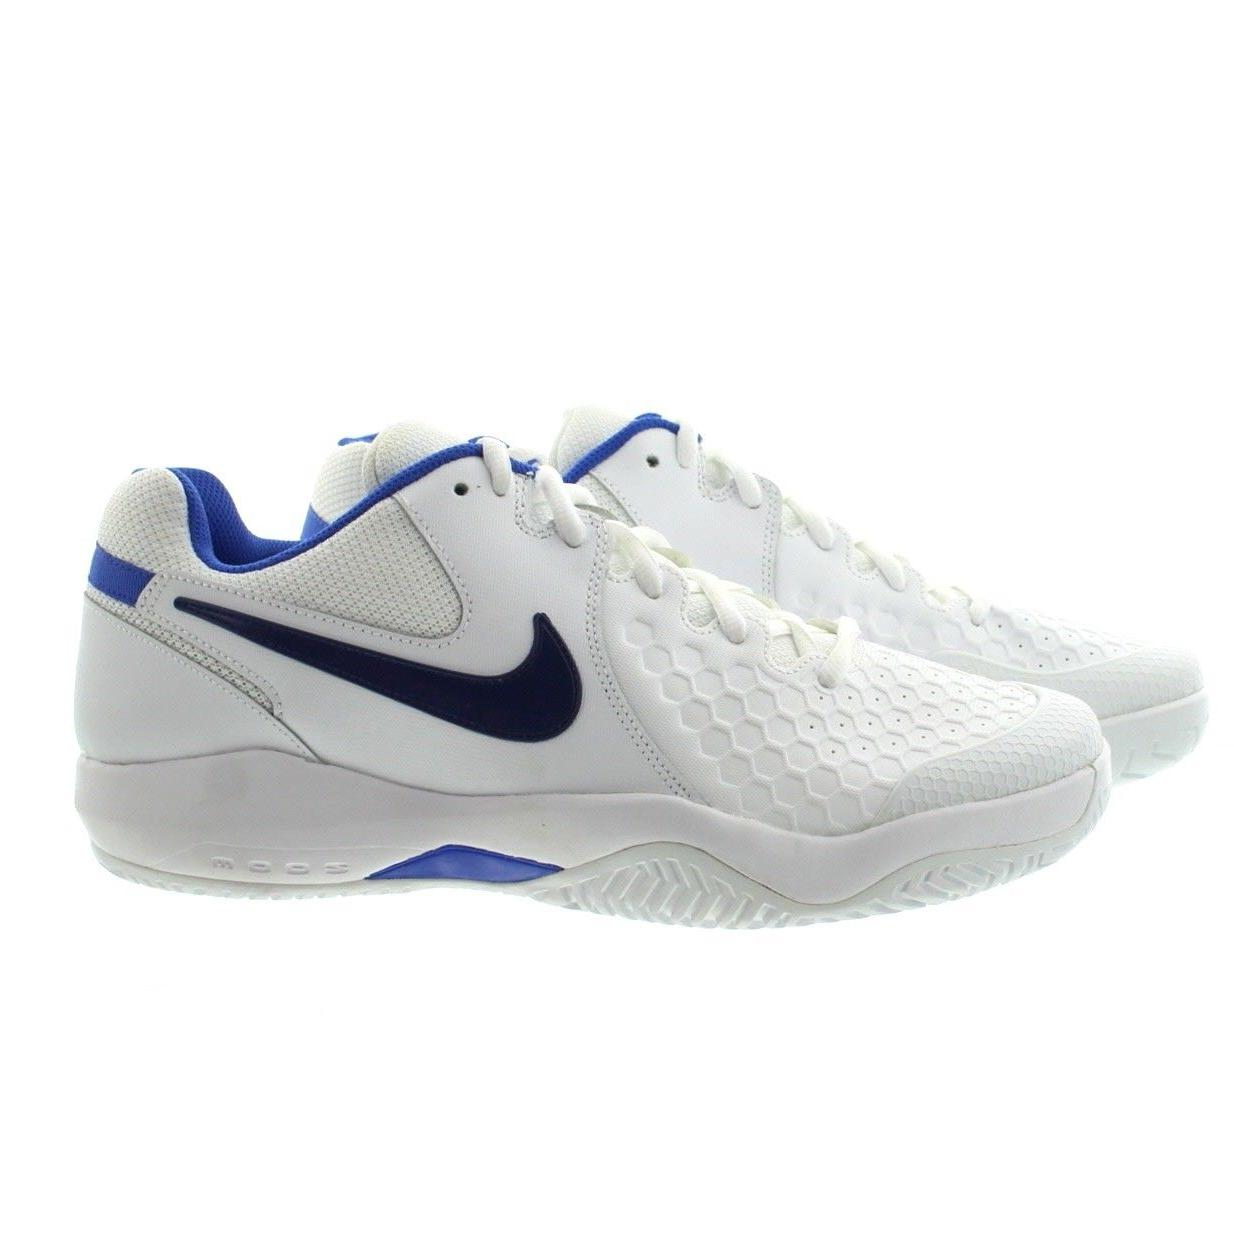 Nike 918194 104 Mens Court Air Zoom Resistance Lightweight T